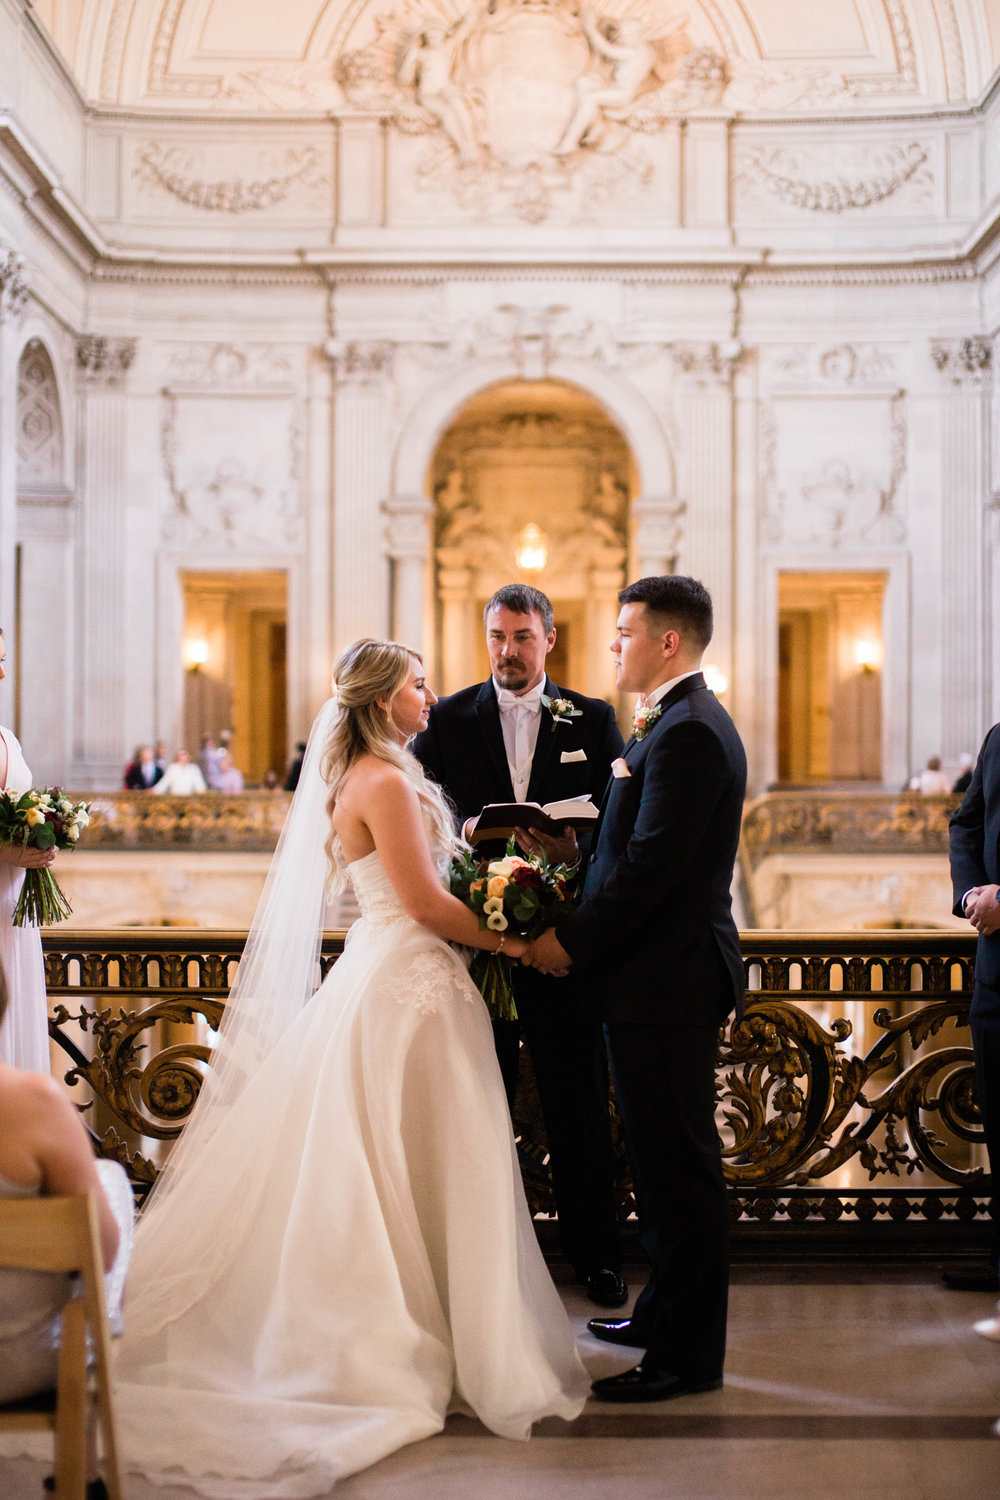 DennisRoyCoronel_Photography_SanFranciscoCityHall_Wedding-39.jpg